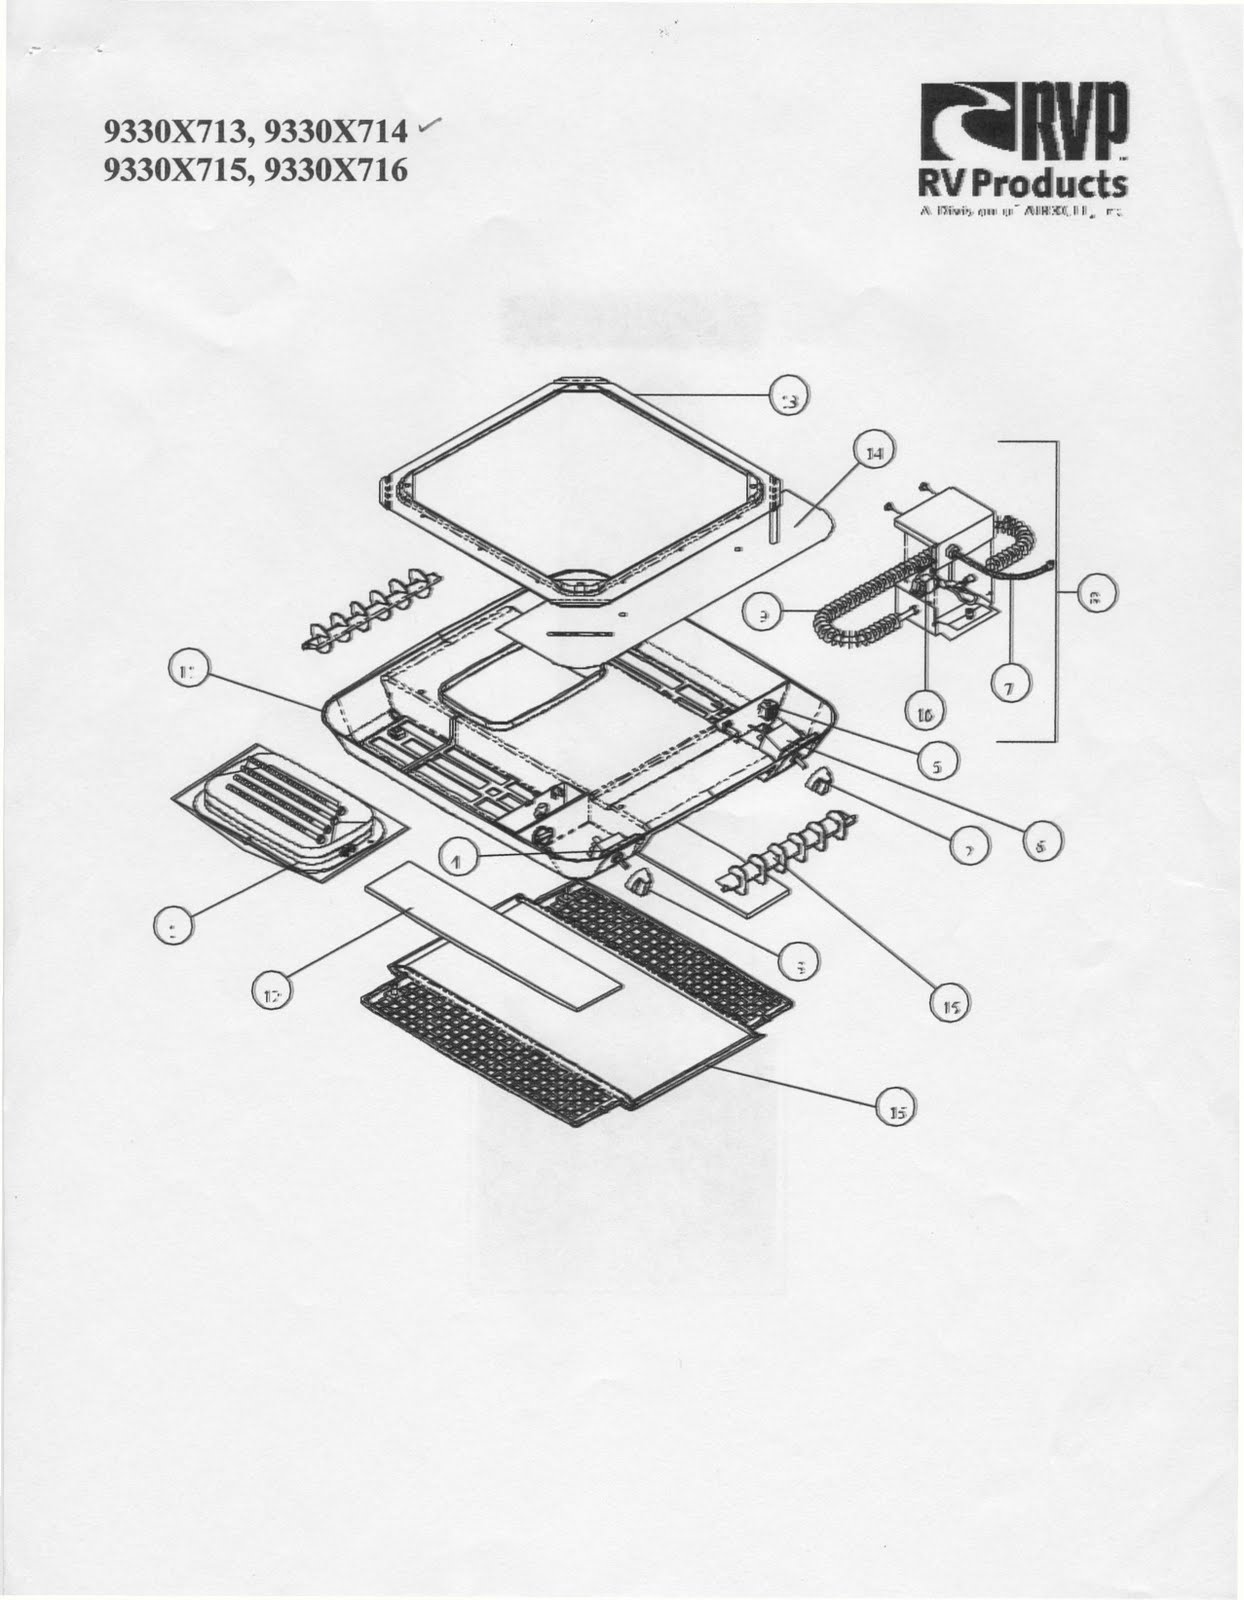 Coleman Thermostat Replacement Parts Eldon Rv Wiring Diagram Manuals Air Conditioners Blogspot Com Mach Conditioner Owners Manual 1244x1600